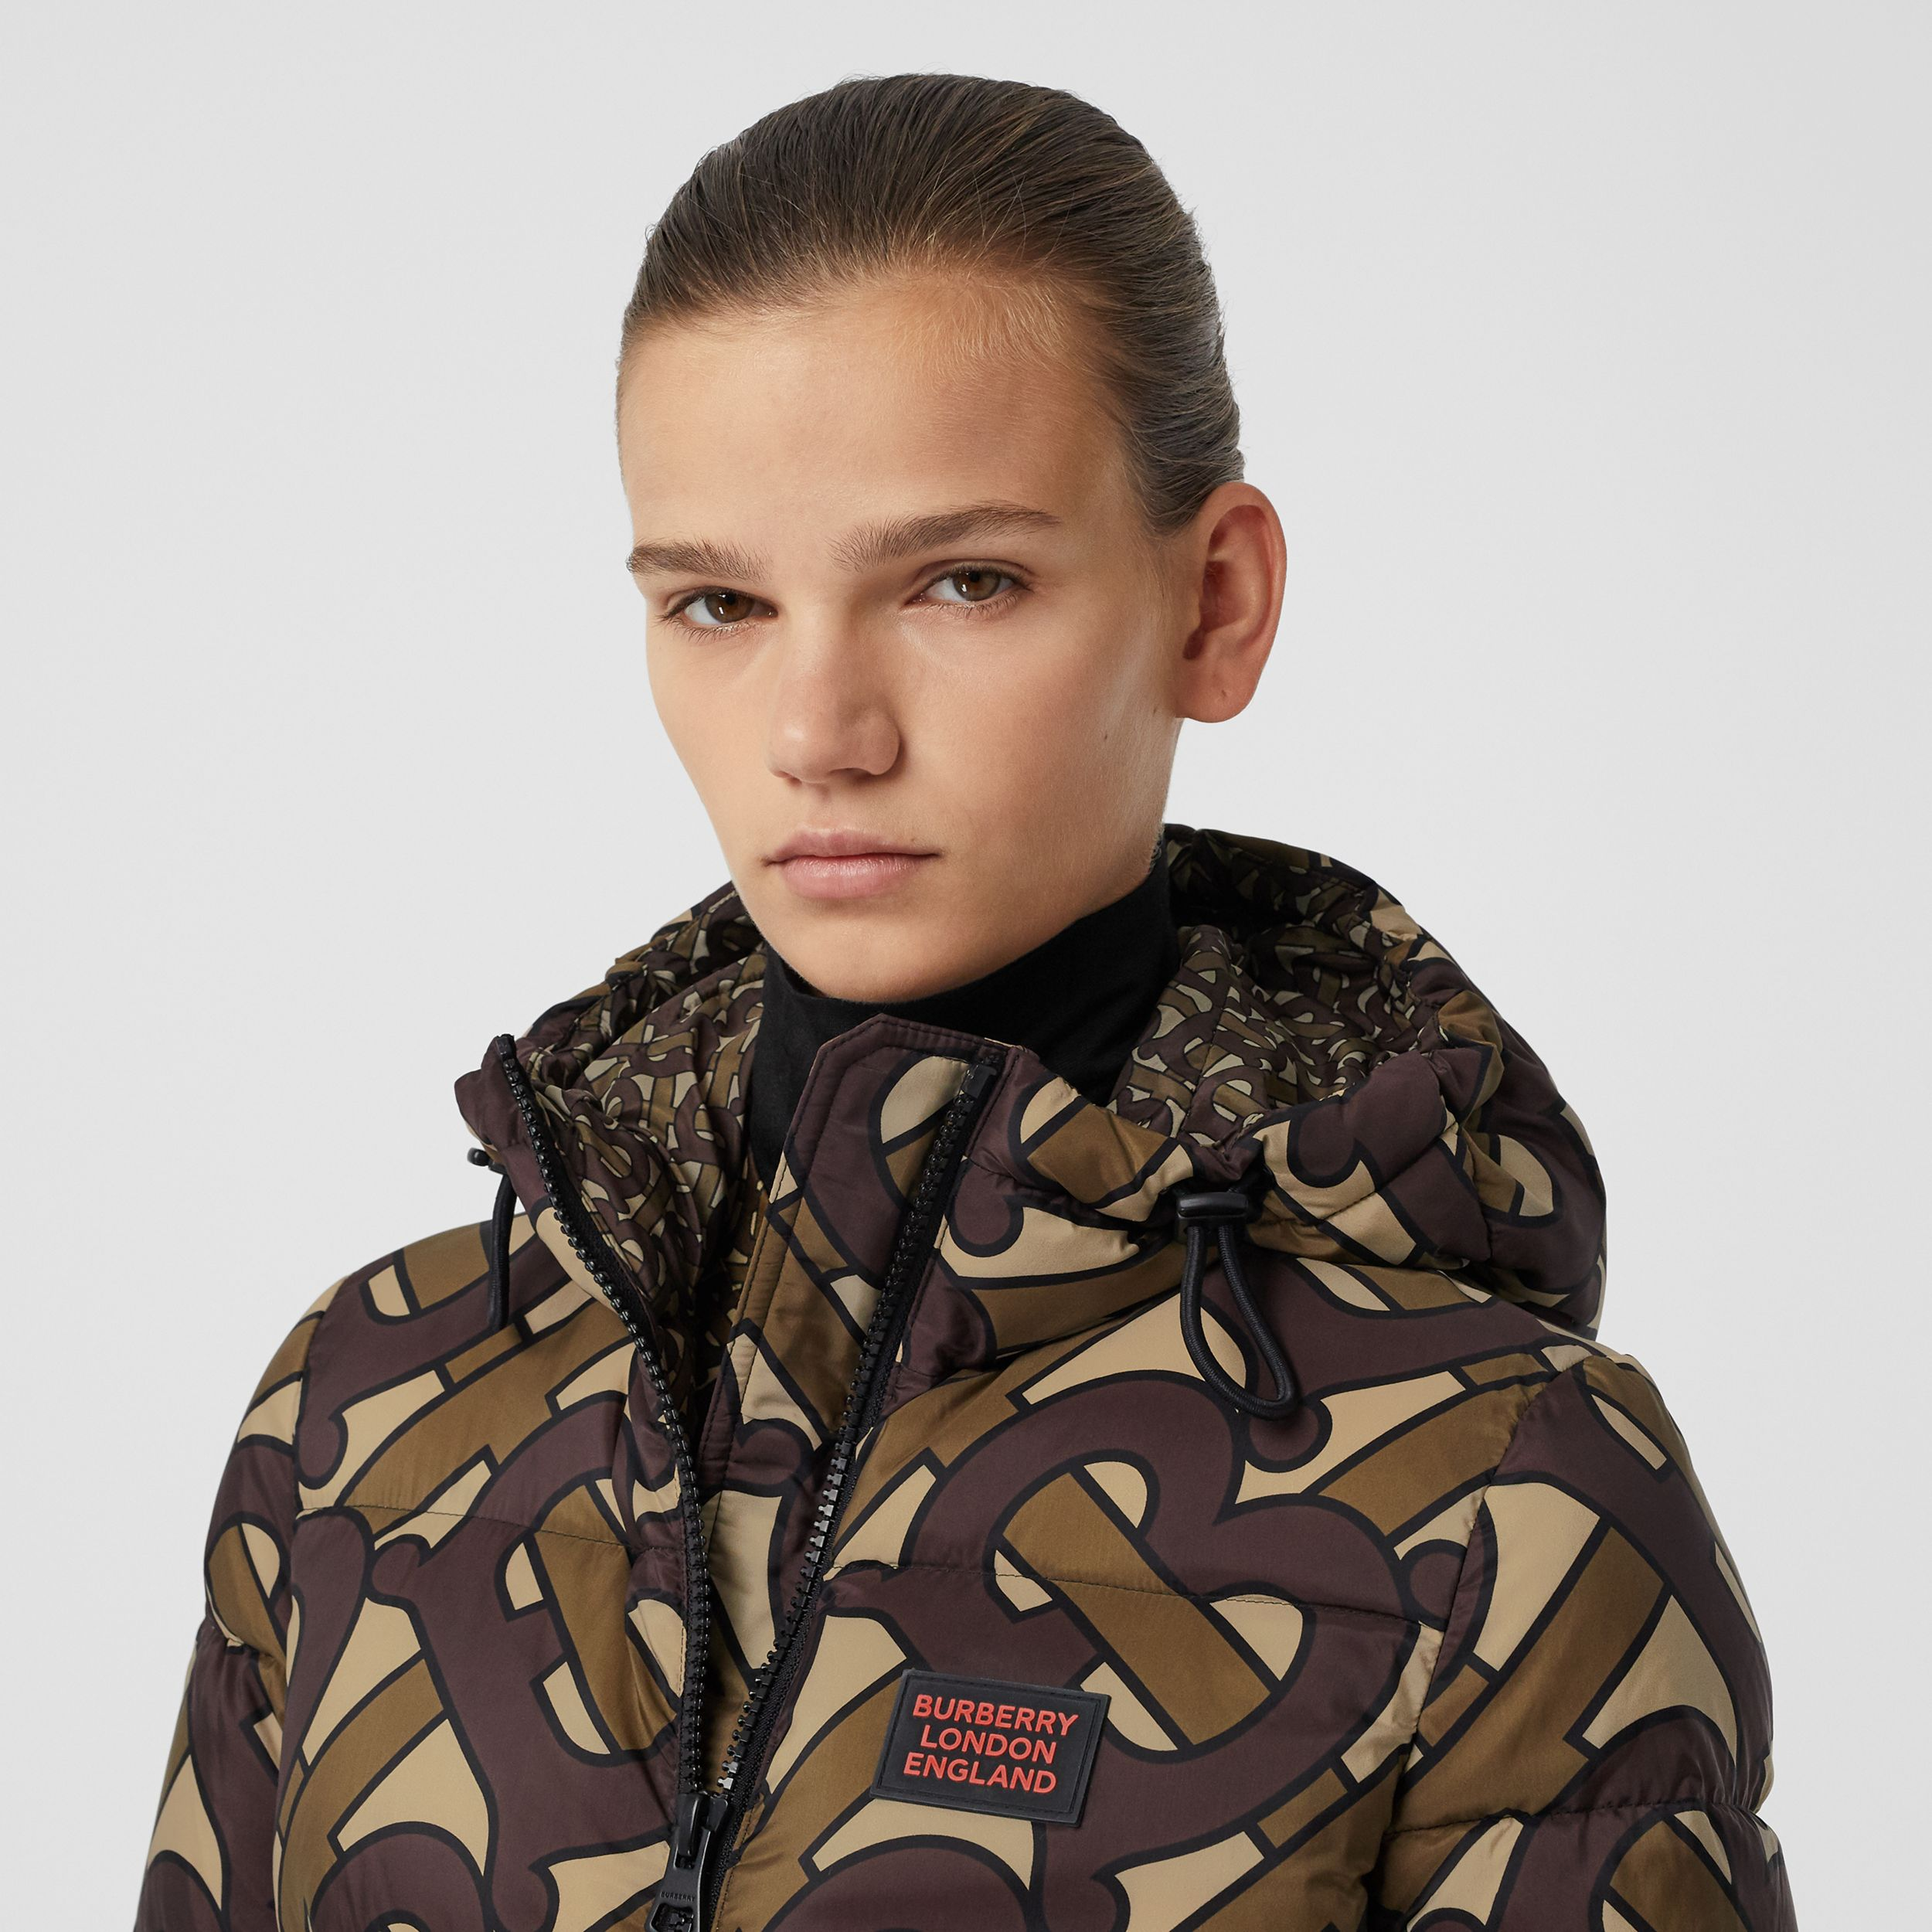 Monogram Print Hooded Puffer Jacket in Bridle Brown - Women | Burberry Canada - 2